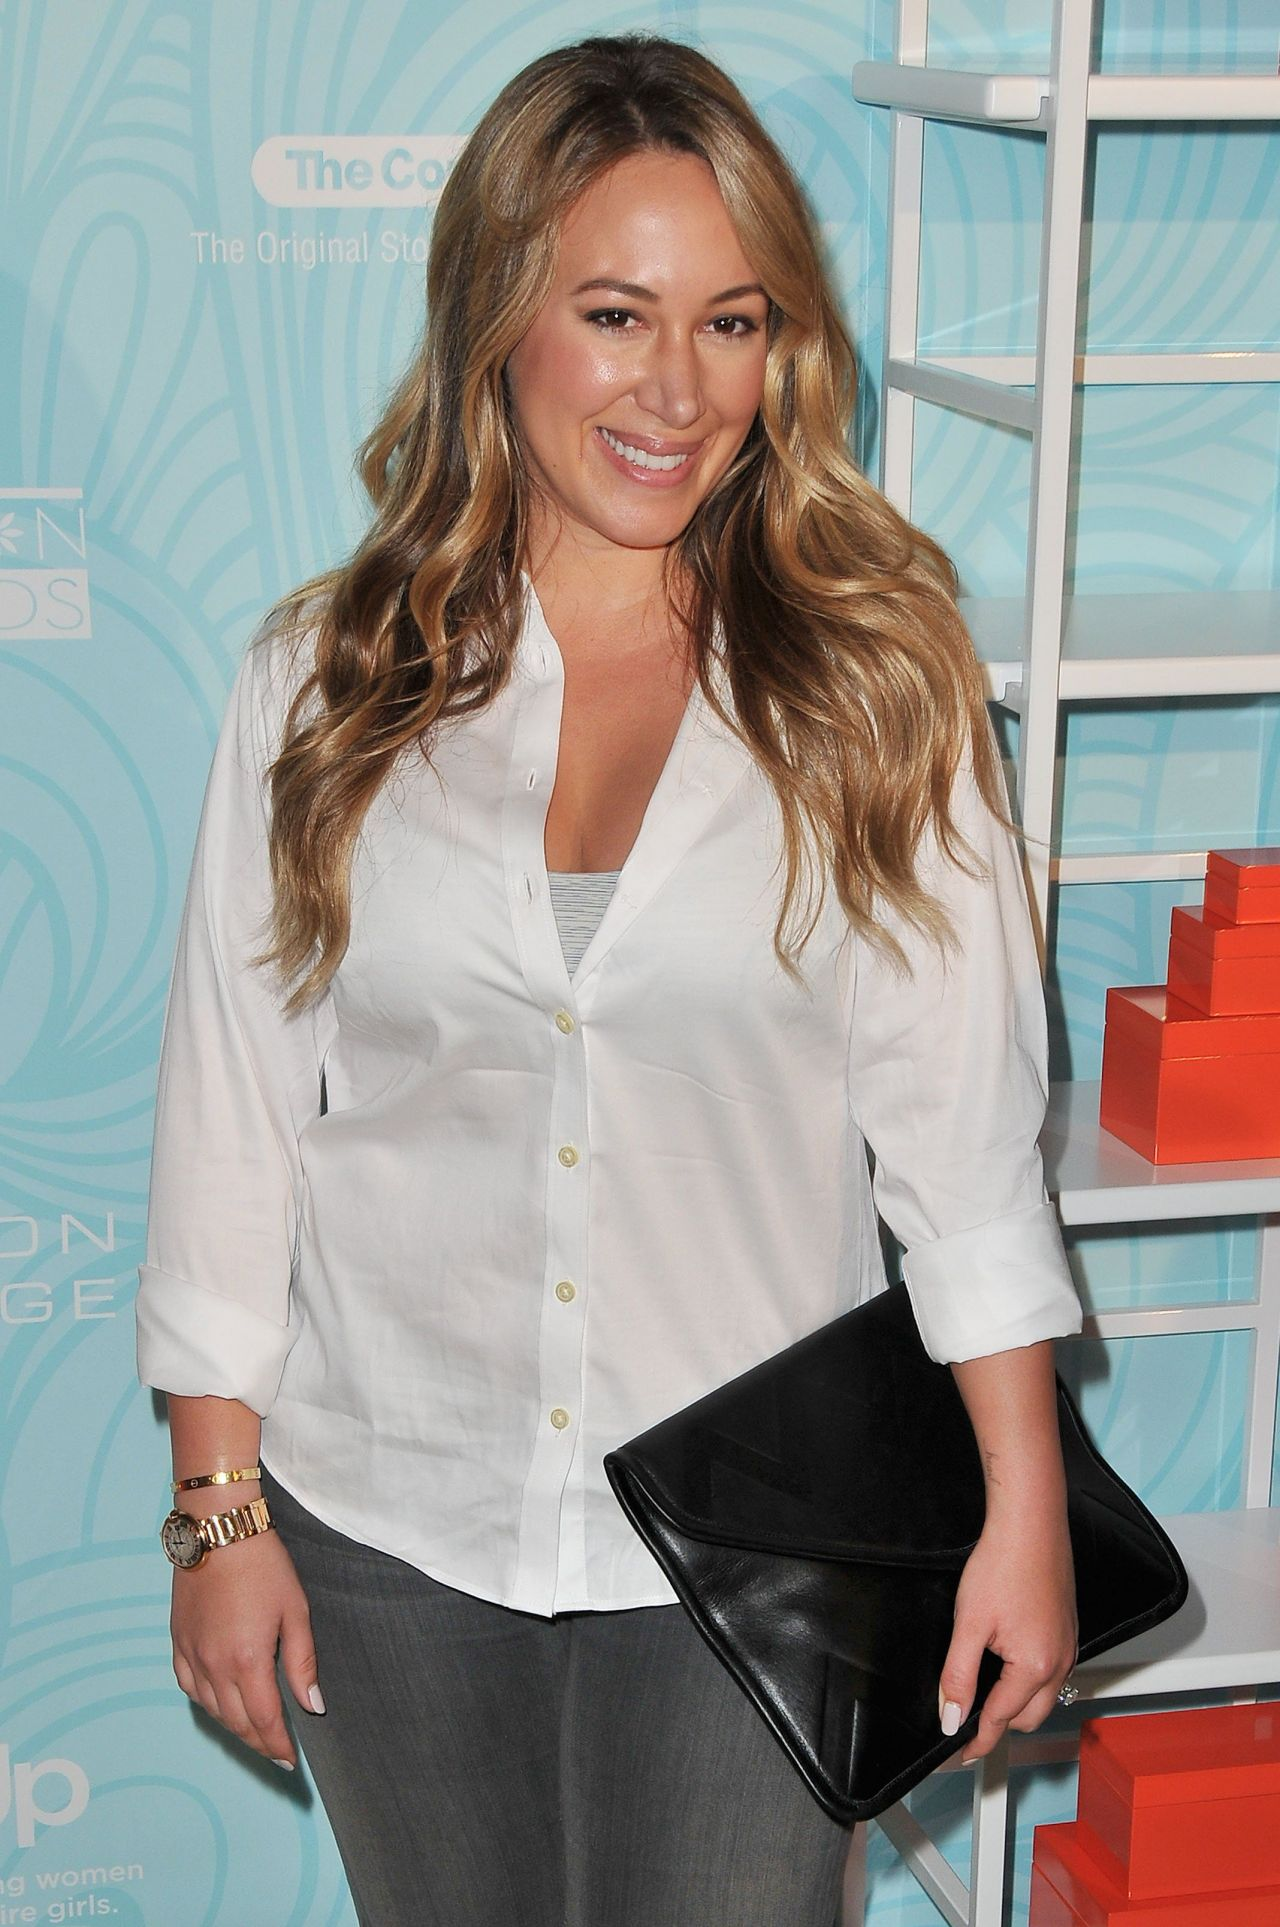 haylie duff movies